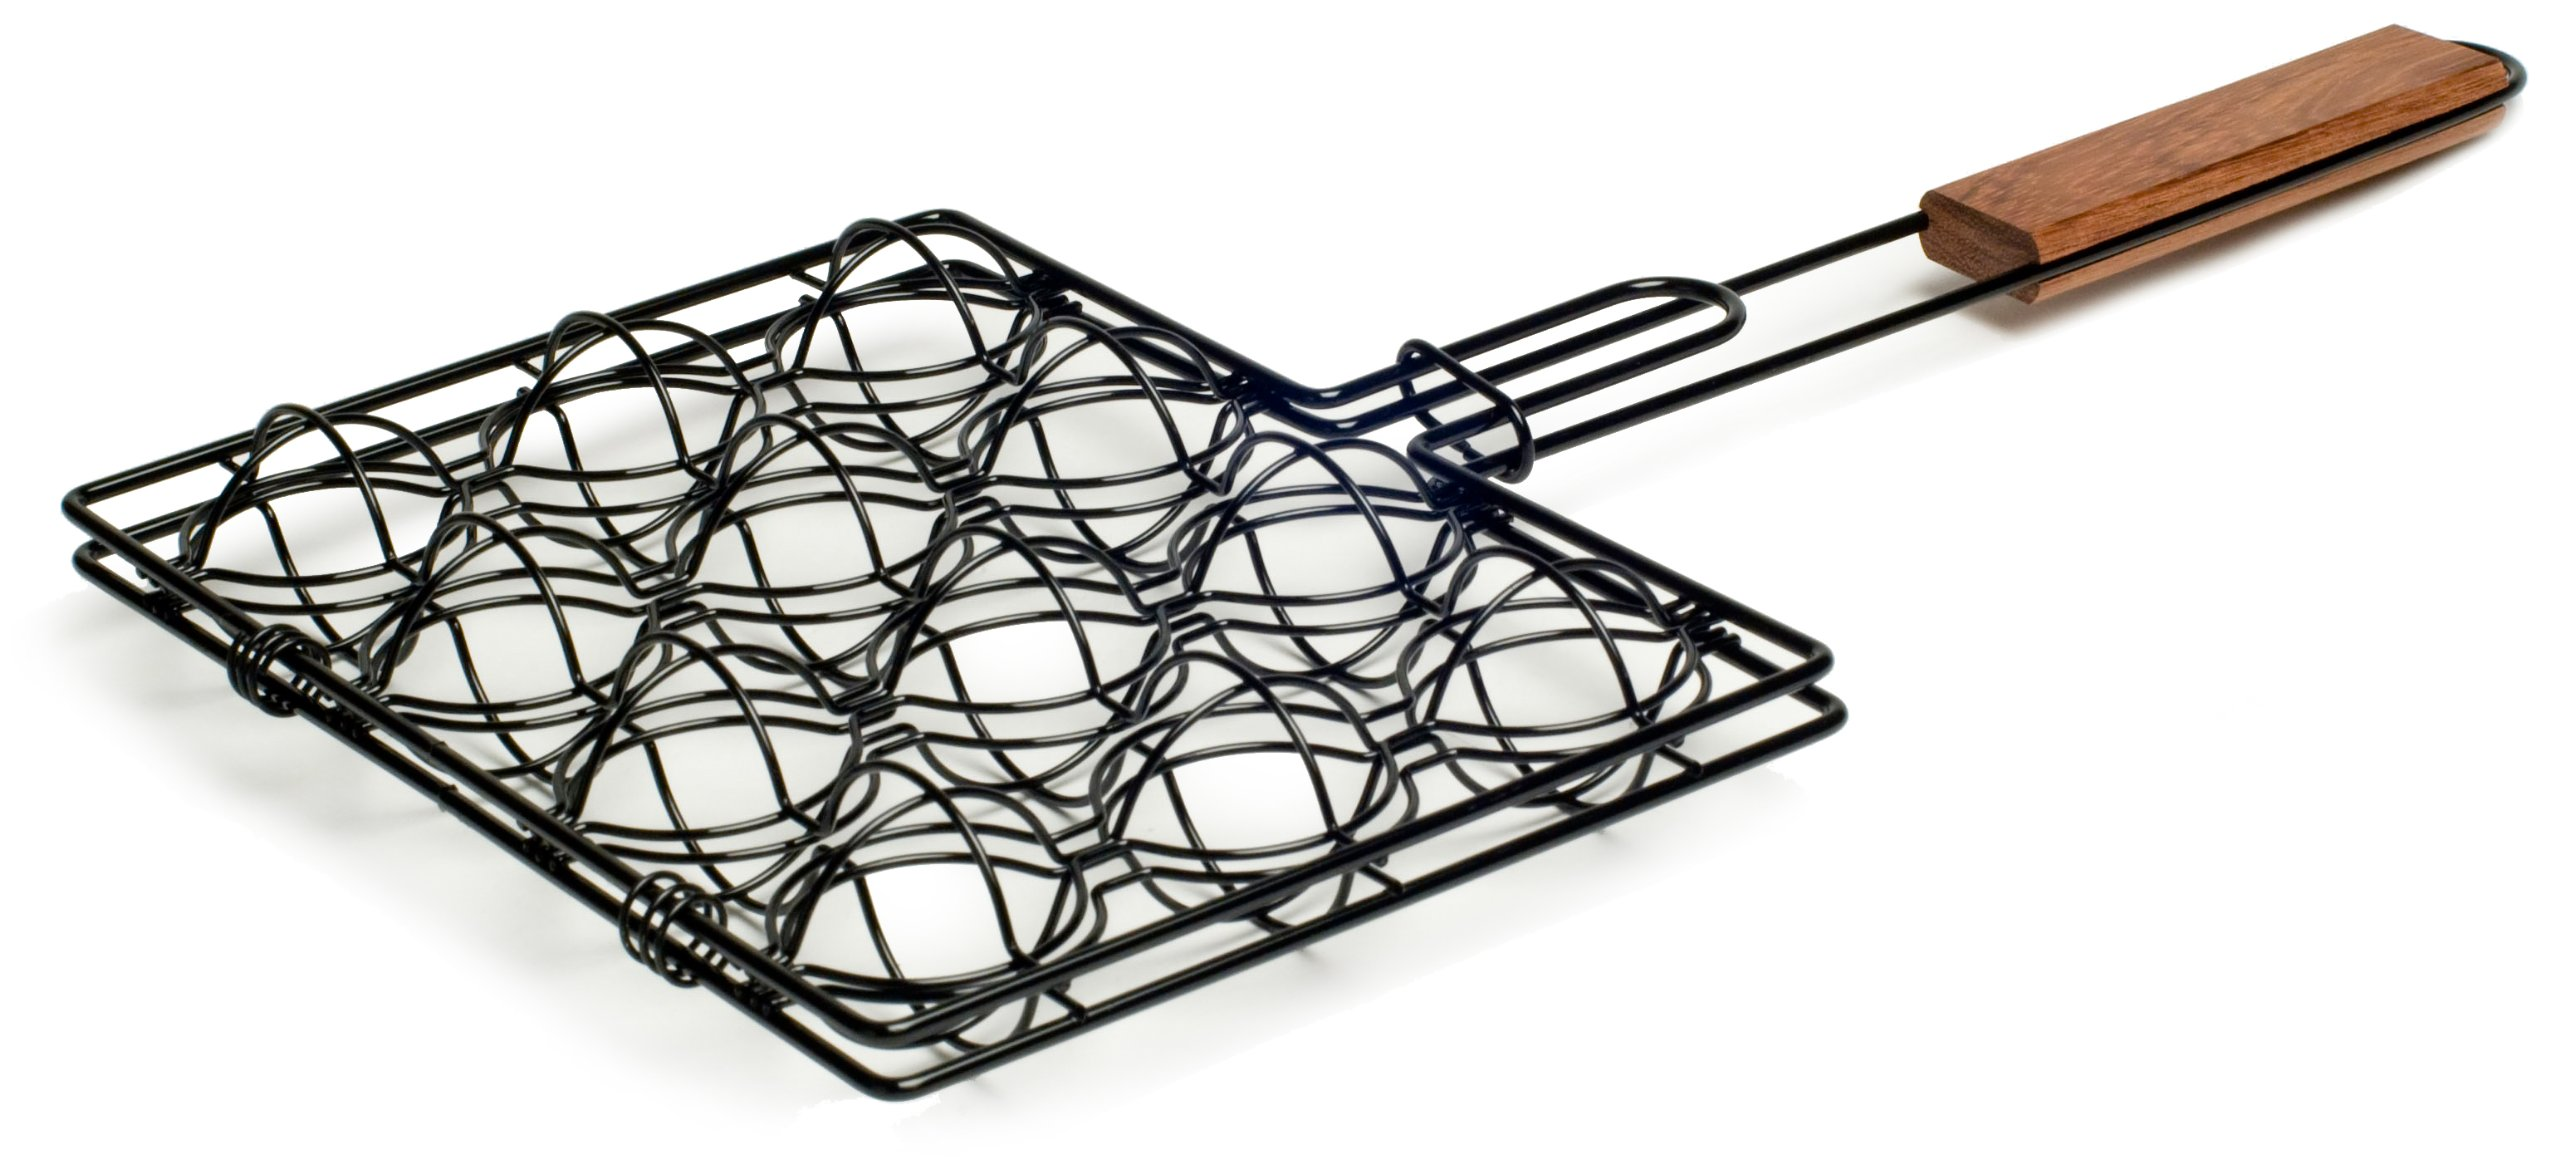 Charcoal Companion CC3504 Non-Stick Meatball Basket by Charcoal Companion